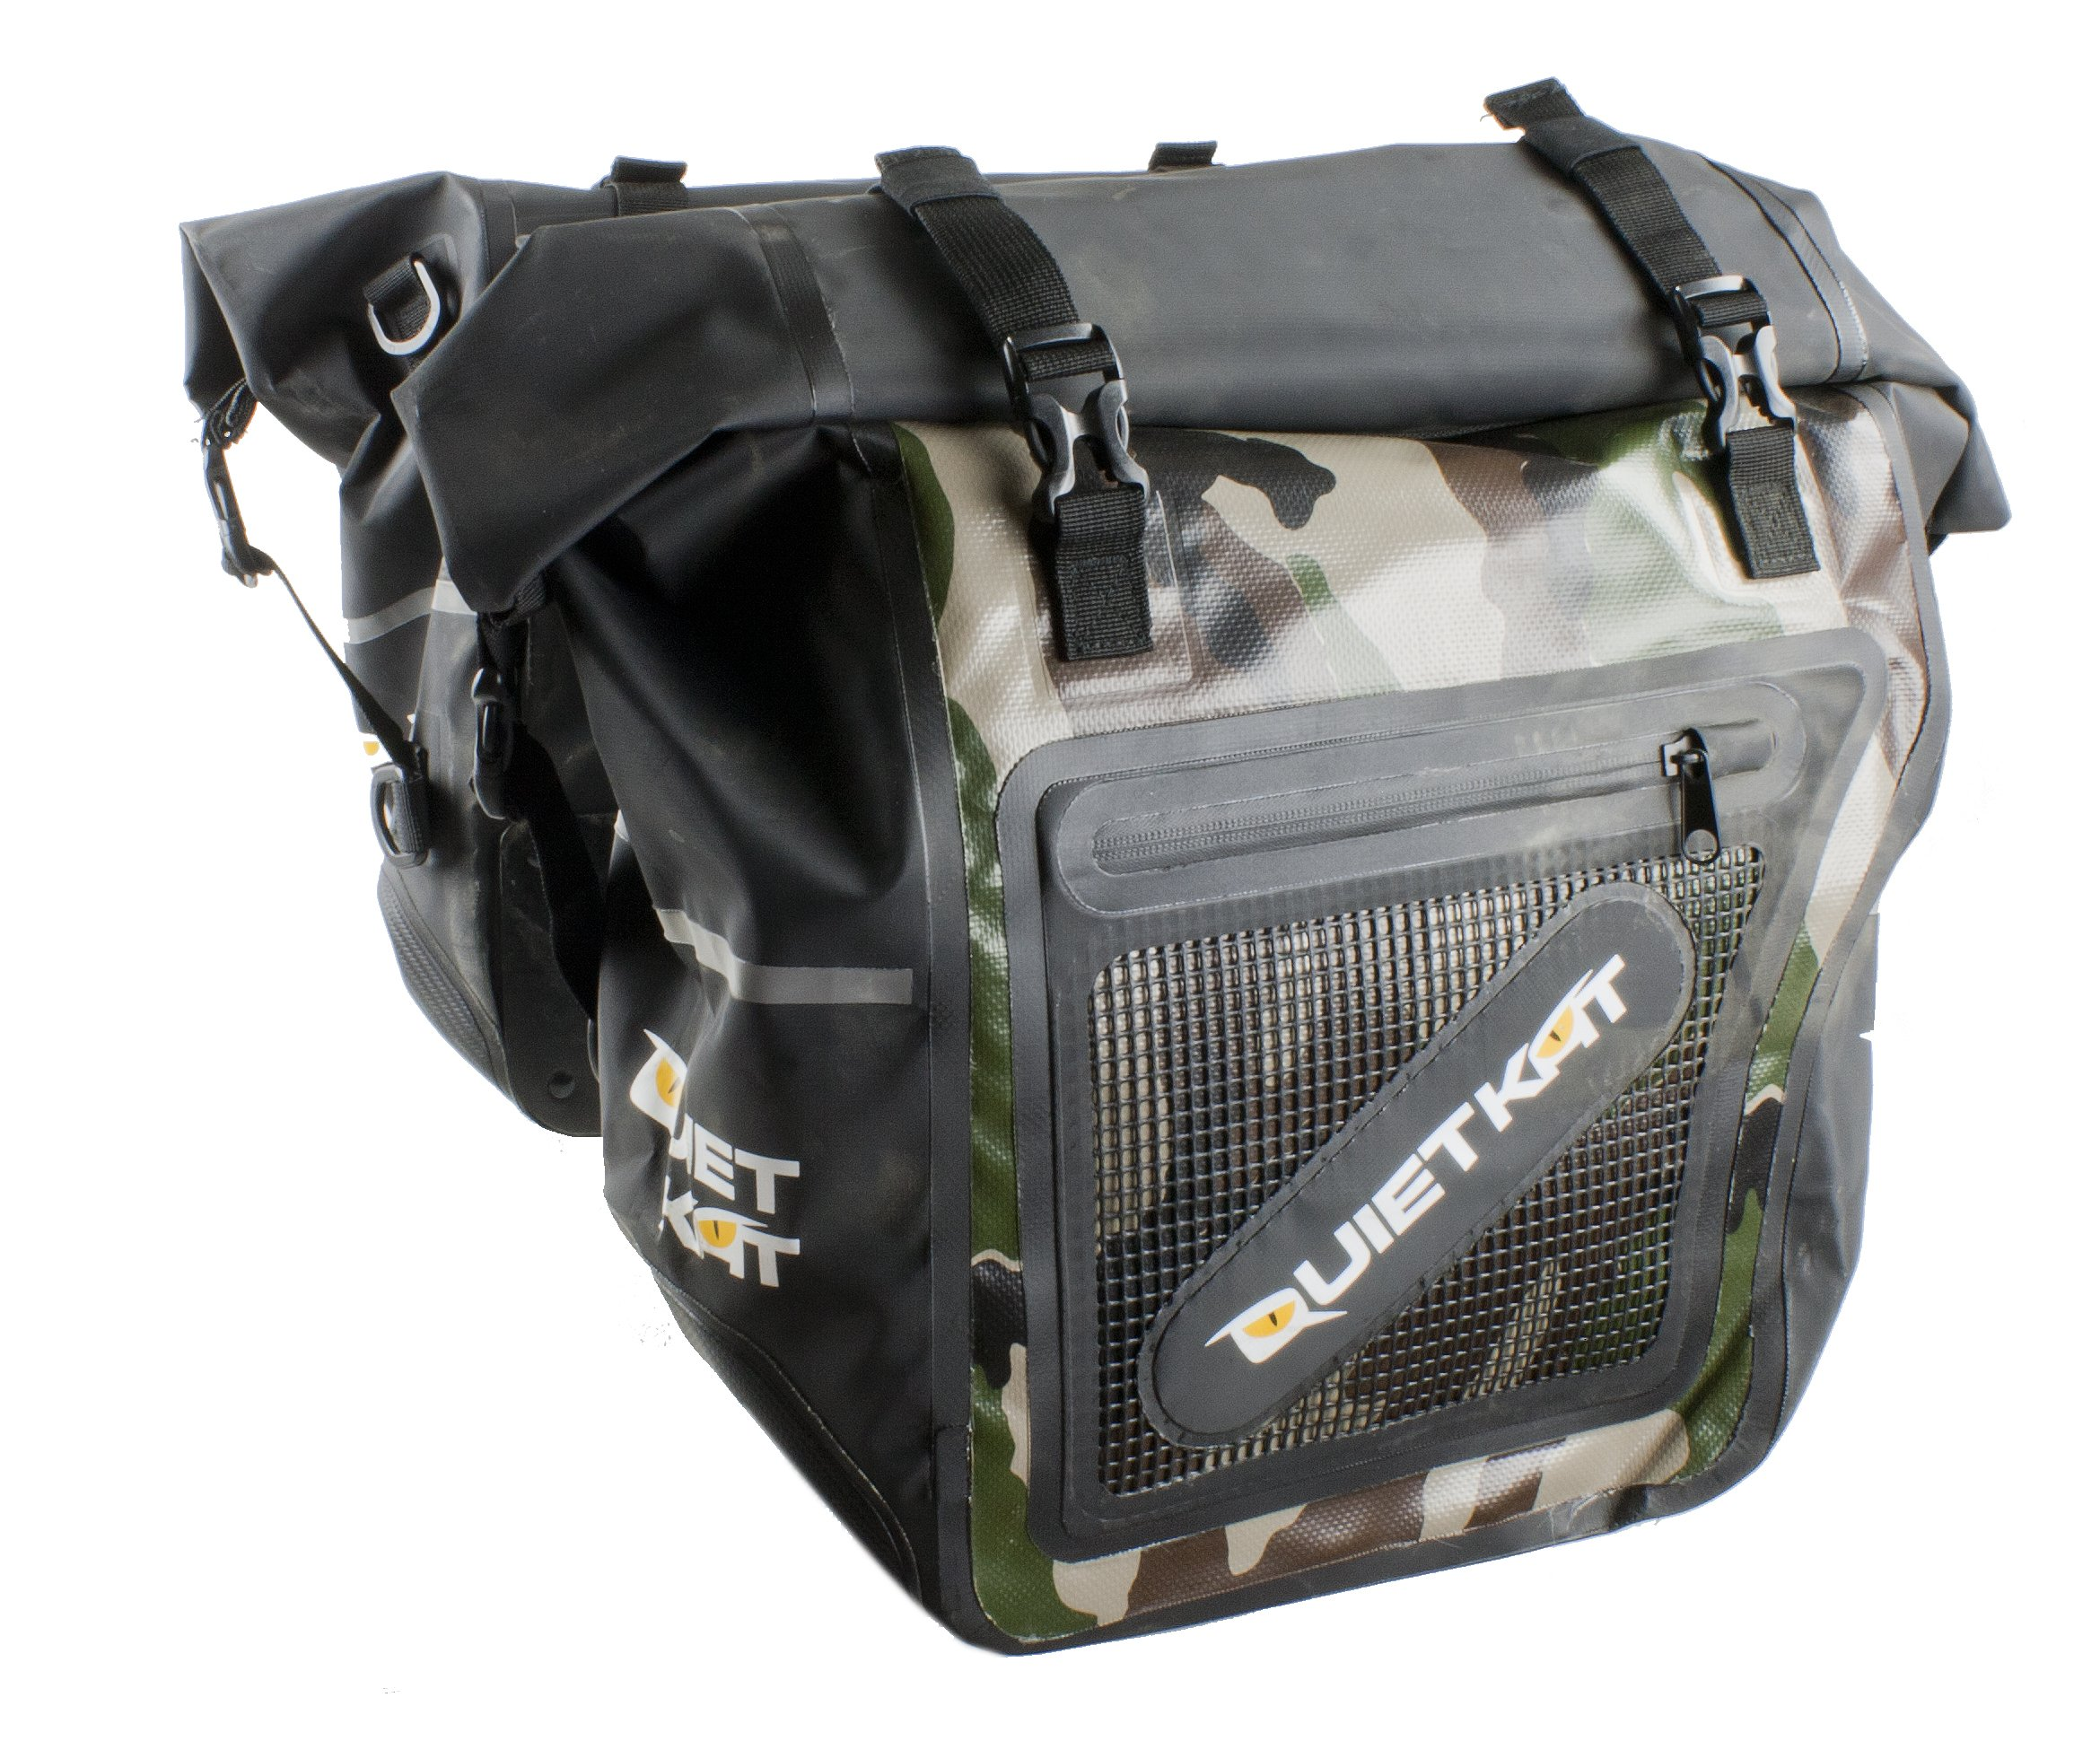 QuietKat Pannier Dry Saddle Bags for 750W & 1000W Fatkat Ebikes- Camo